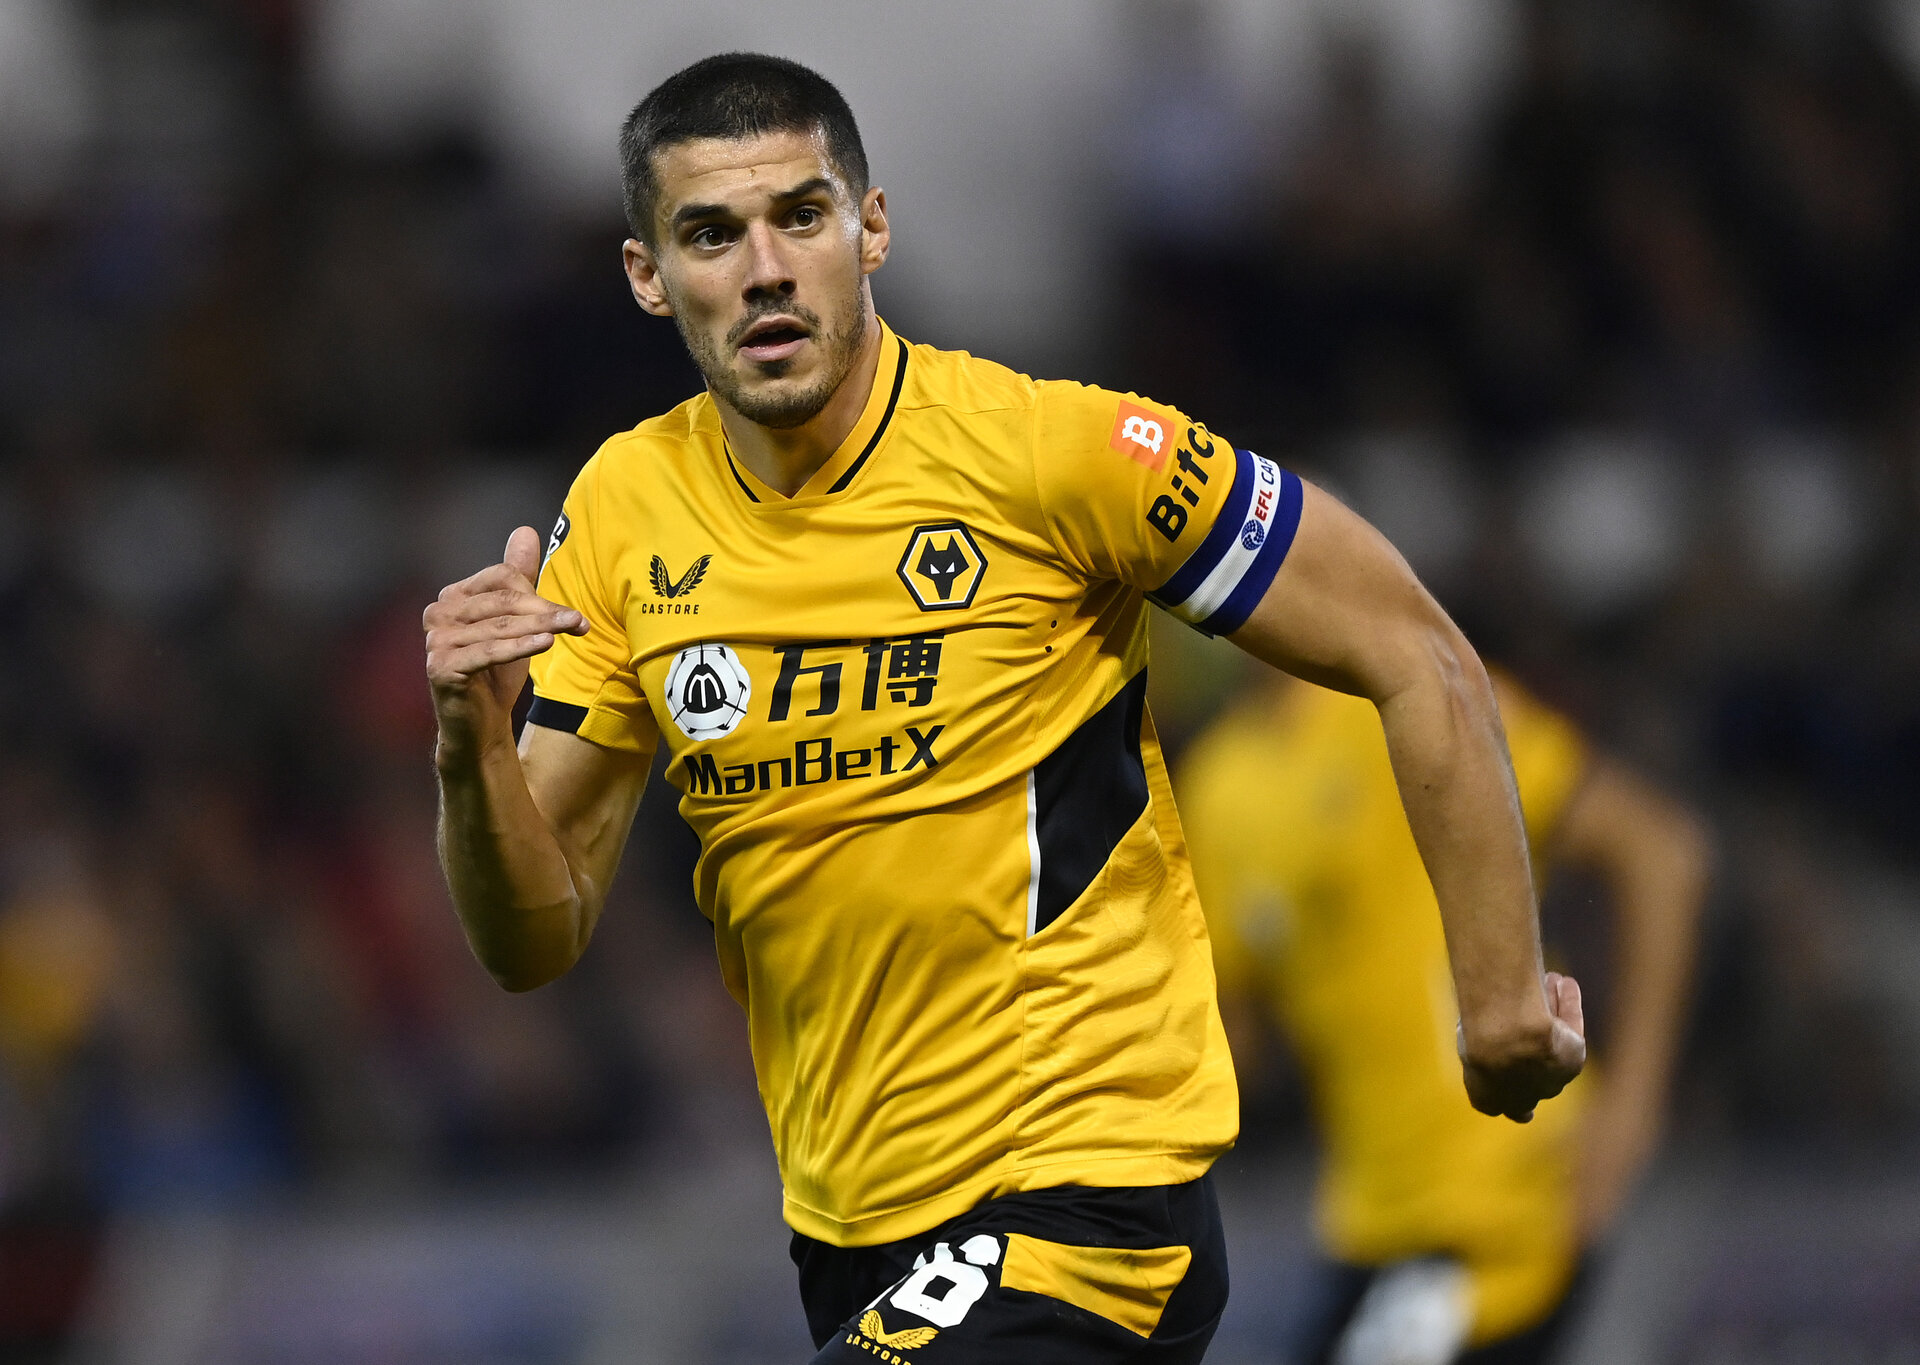 NOTTINGHAM, ENGLAND - AUGUST 24:  Conor Coady of Wolverhampton Wanderers during the Carabao Cup Second Round match between Nottingham Forest and Wolverhampton Wanderers at City Ground on August 24, 2021 in Nottingham, England. (Photo by Shaun Botterill/Getty Images)